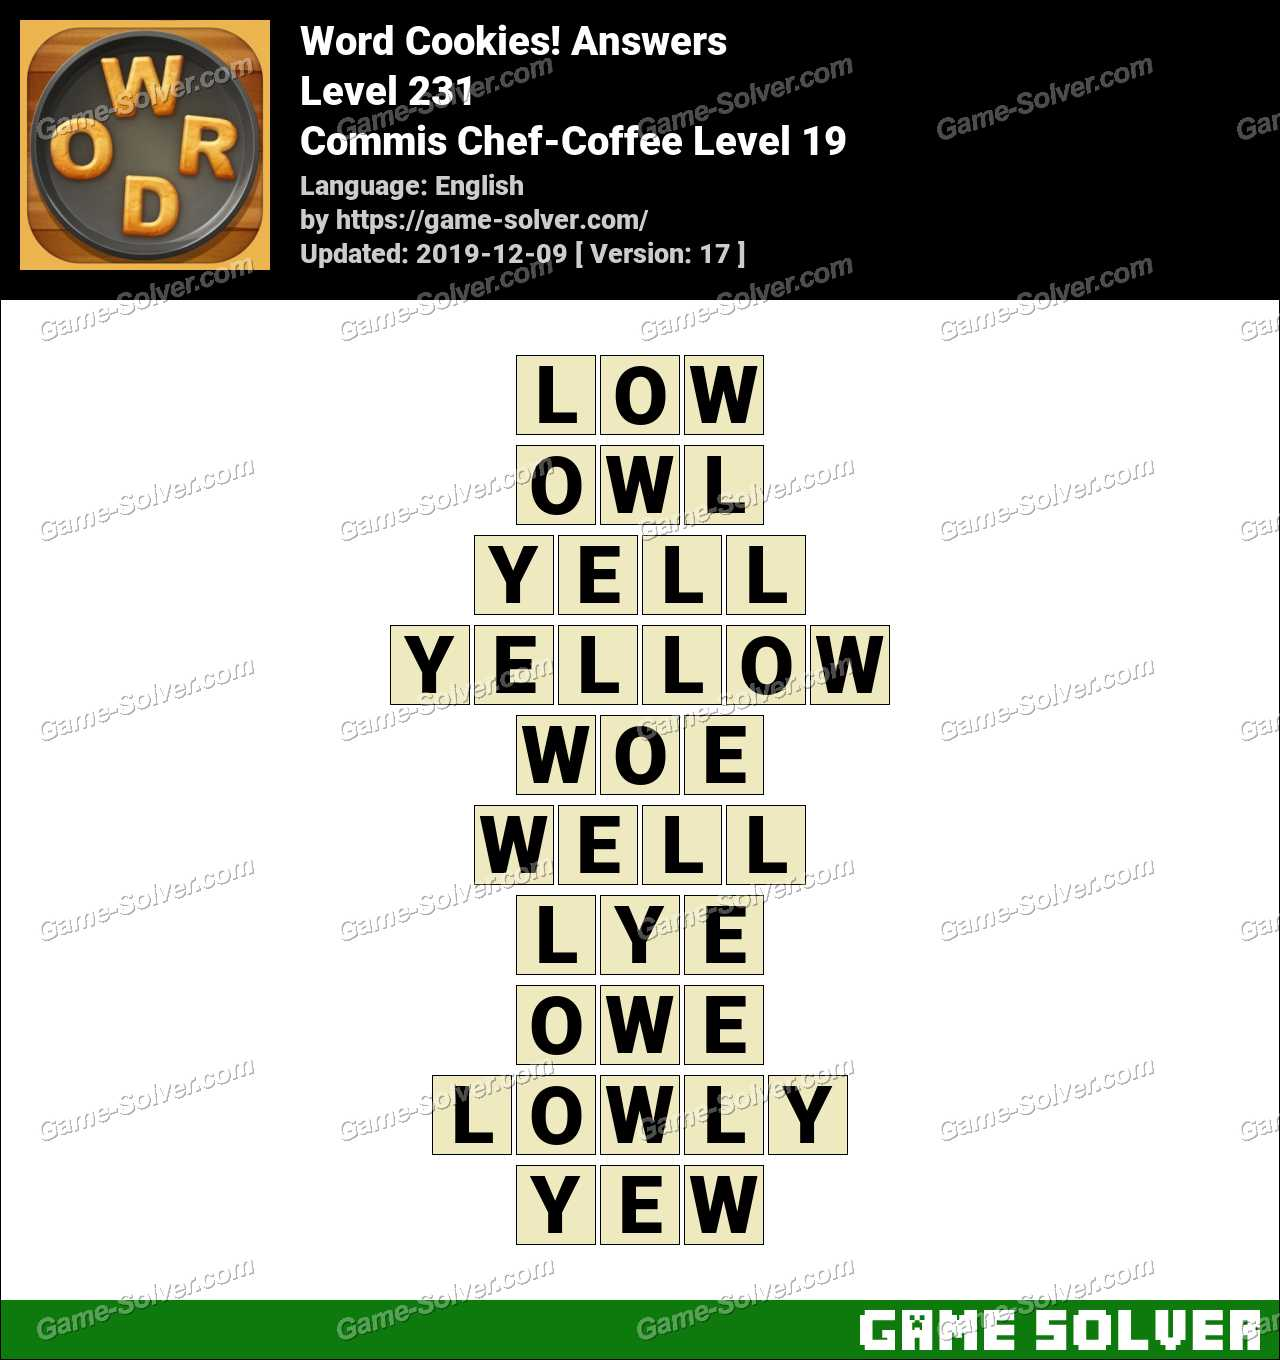 Word Cookies Commis Chef-Coffee Level 19 Answers